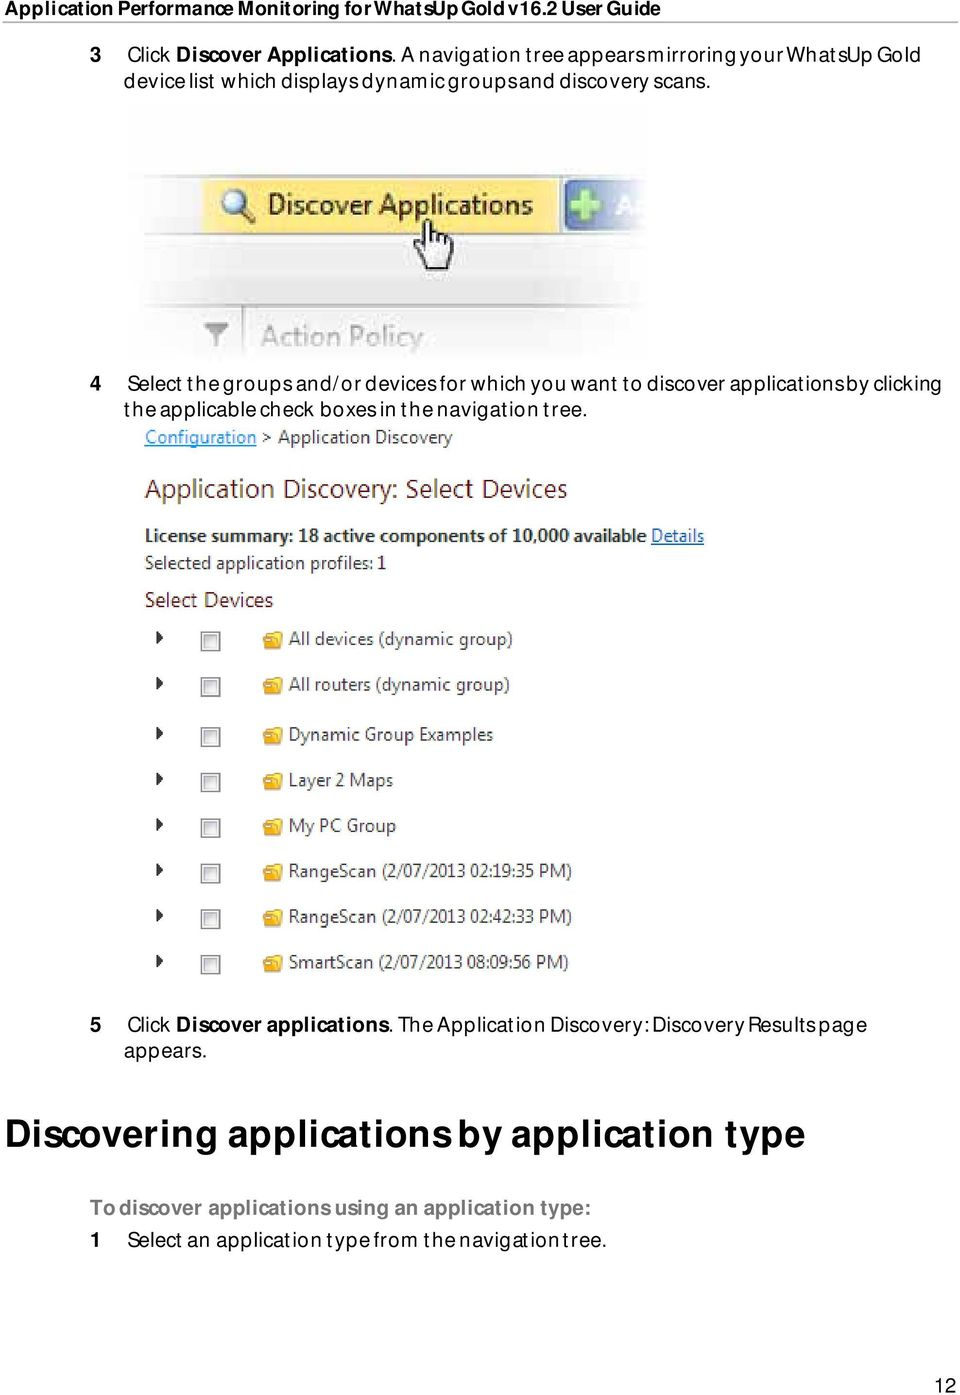 4 Select the groups and/or devices for which you want to discover applications by clicking the applicable check boxes in the